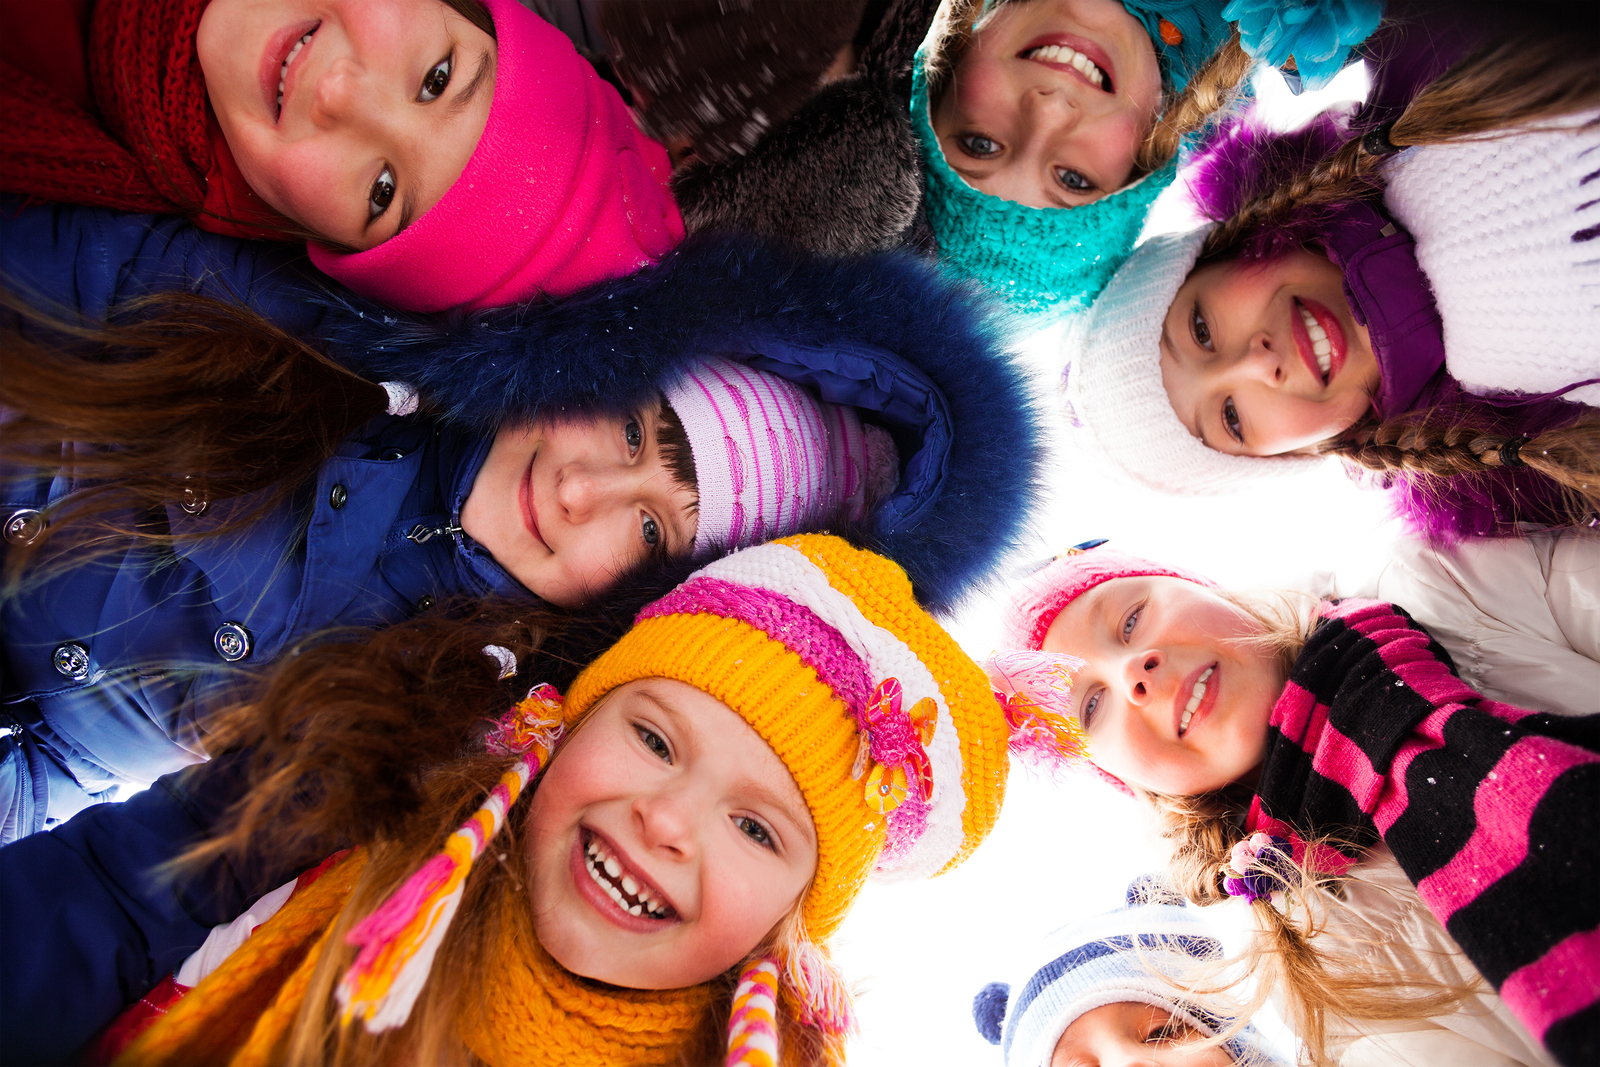 The outside temperature does not affect head lice or their ability to spread to others.